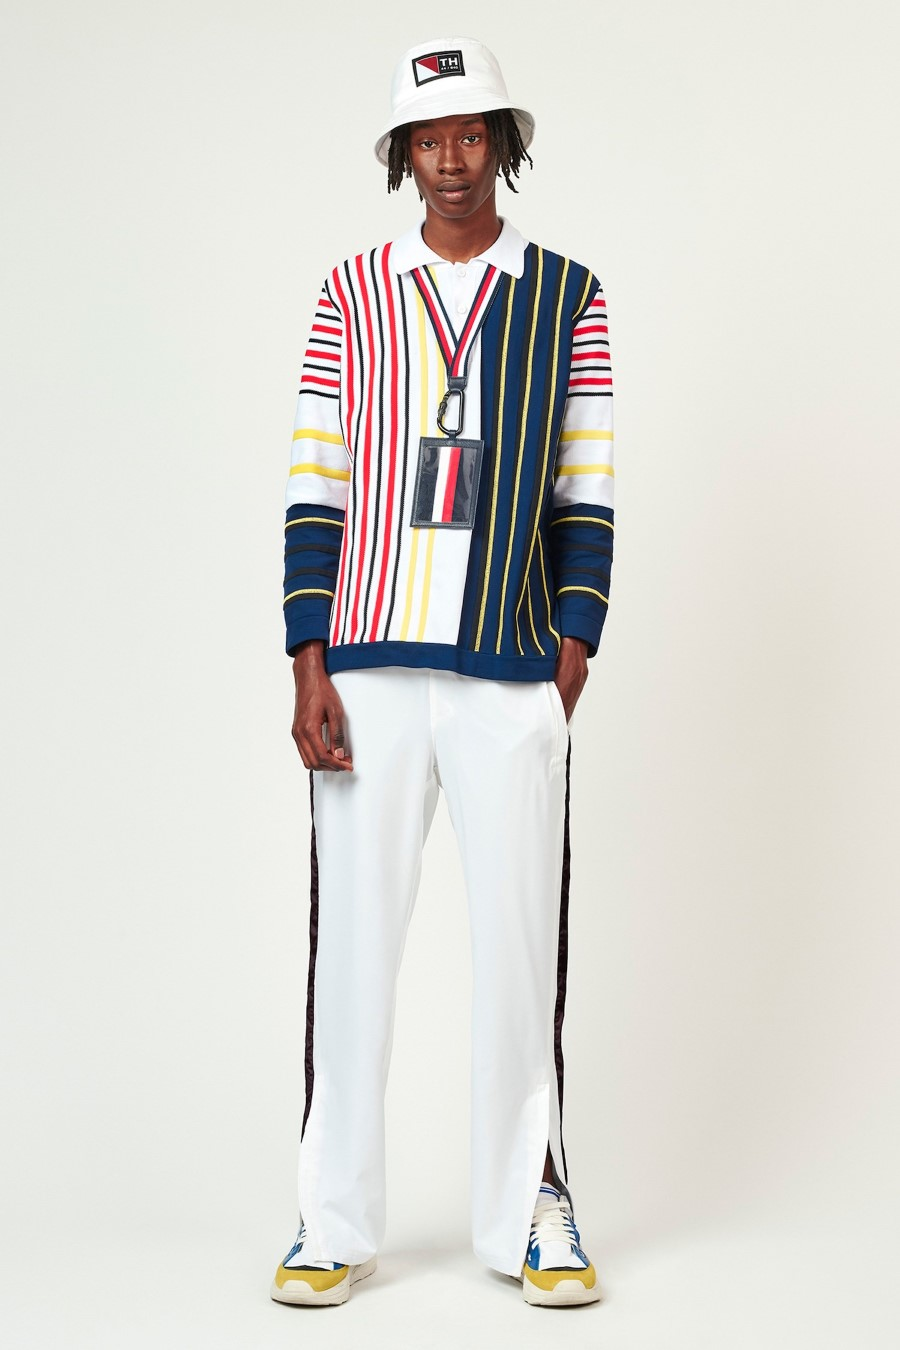 Tommy Hilfiger Printemps/Été 2019 - New York Fashion Week Men's